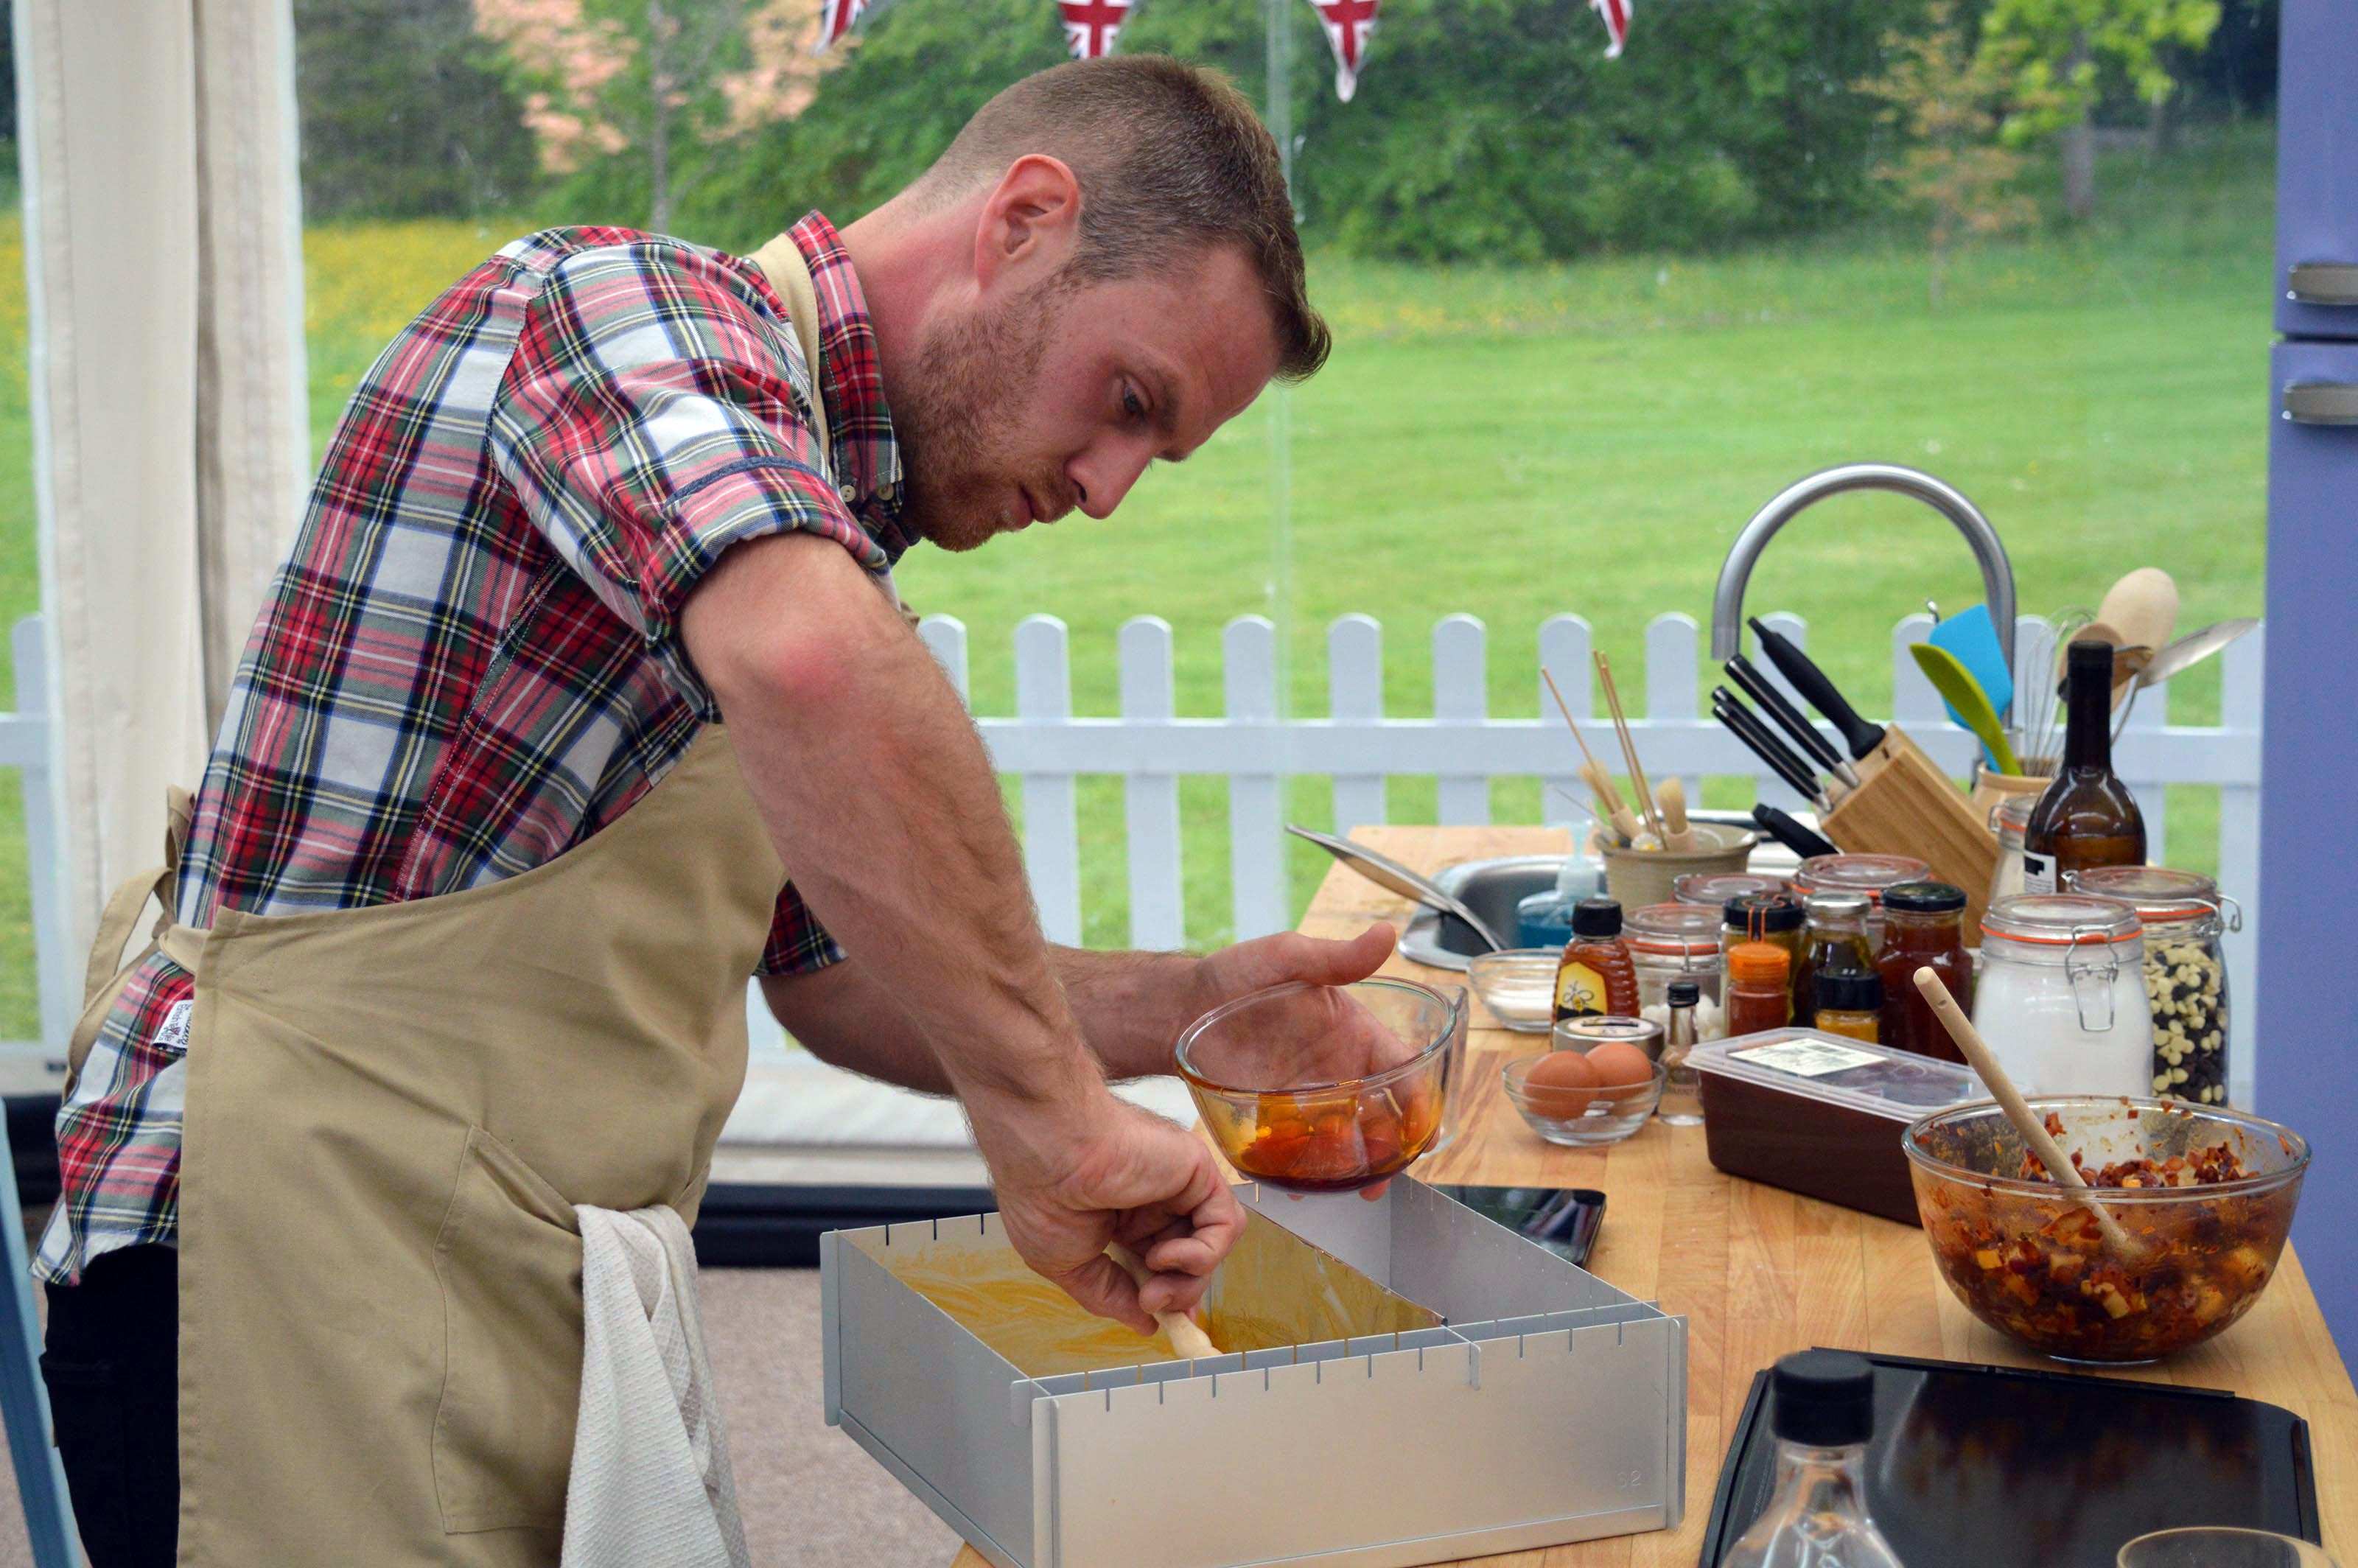 The Great British Bake Off's Steven makes his Showstopper